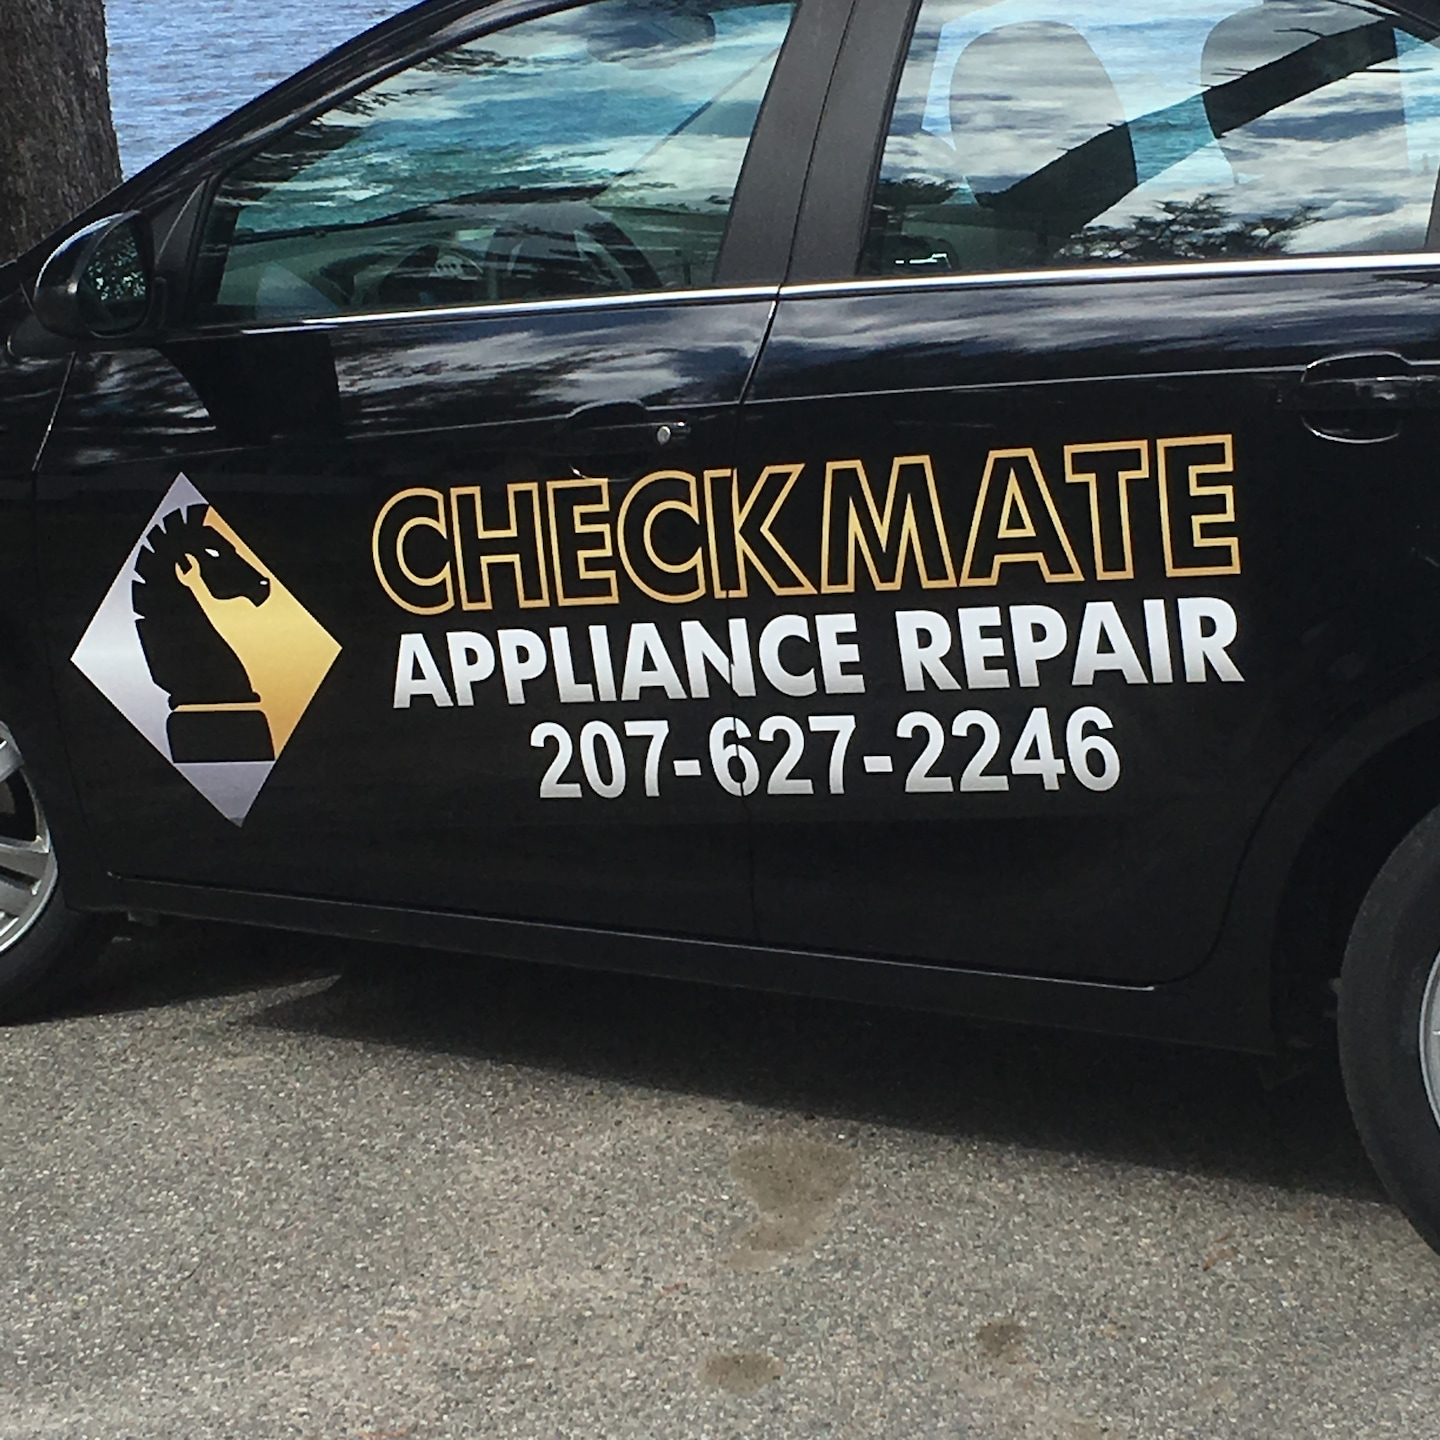 Checkmate Appliance Repair